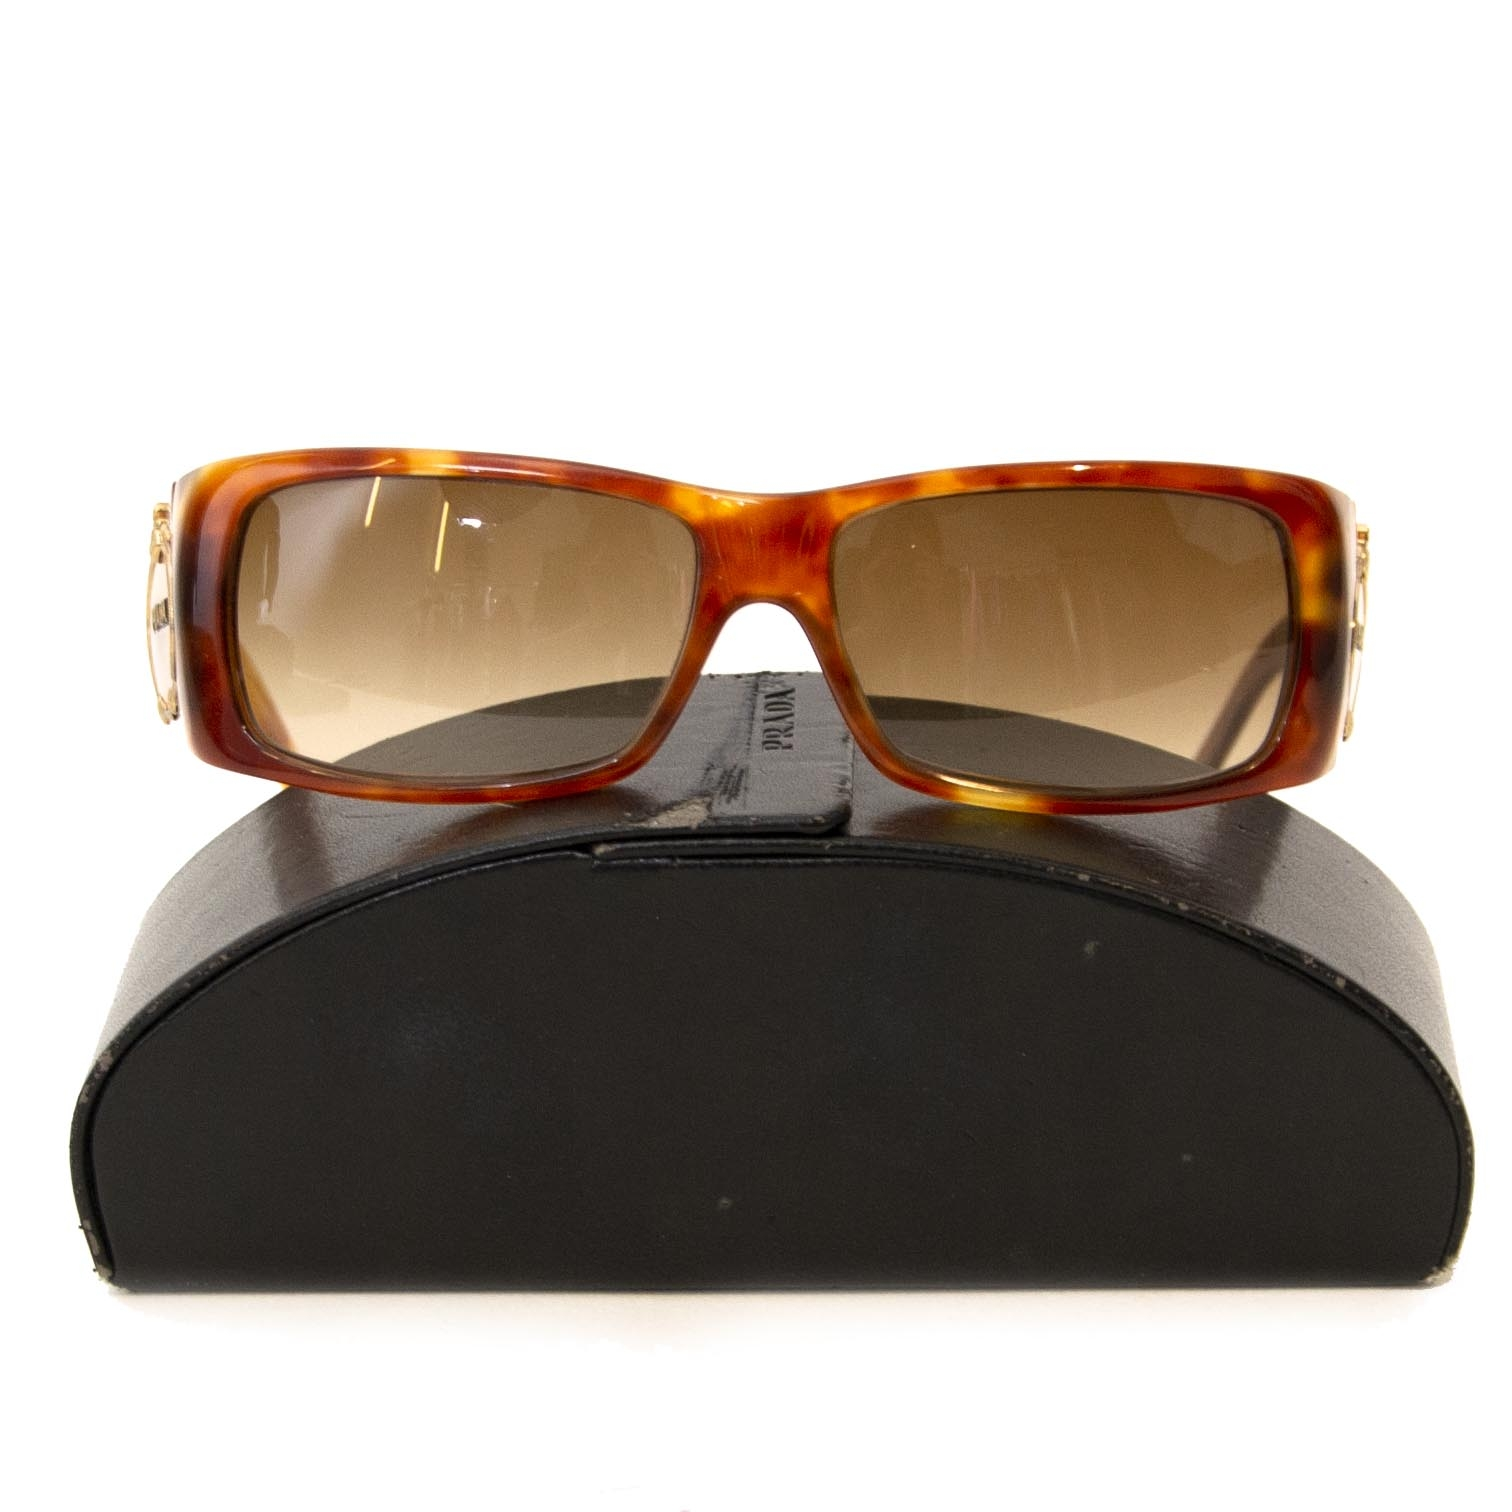 Koop en verkoop uw authentieke Prada Brown Rectangle Sunglasses